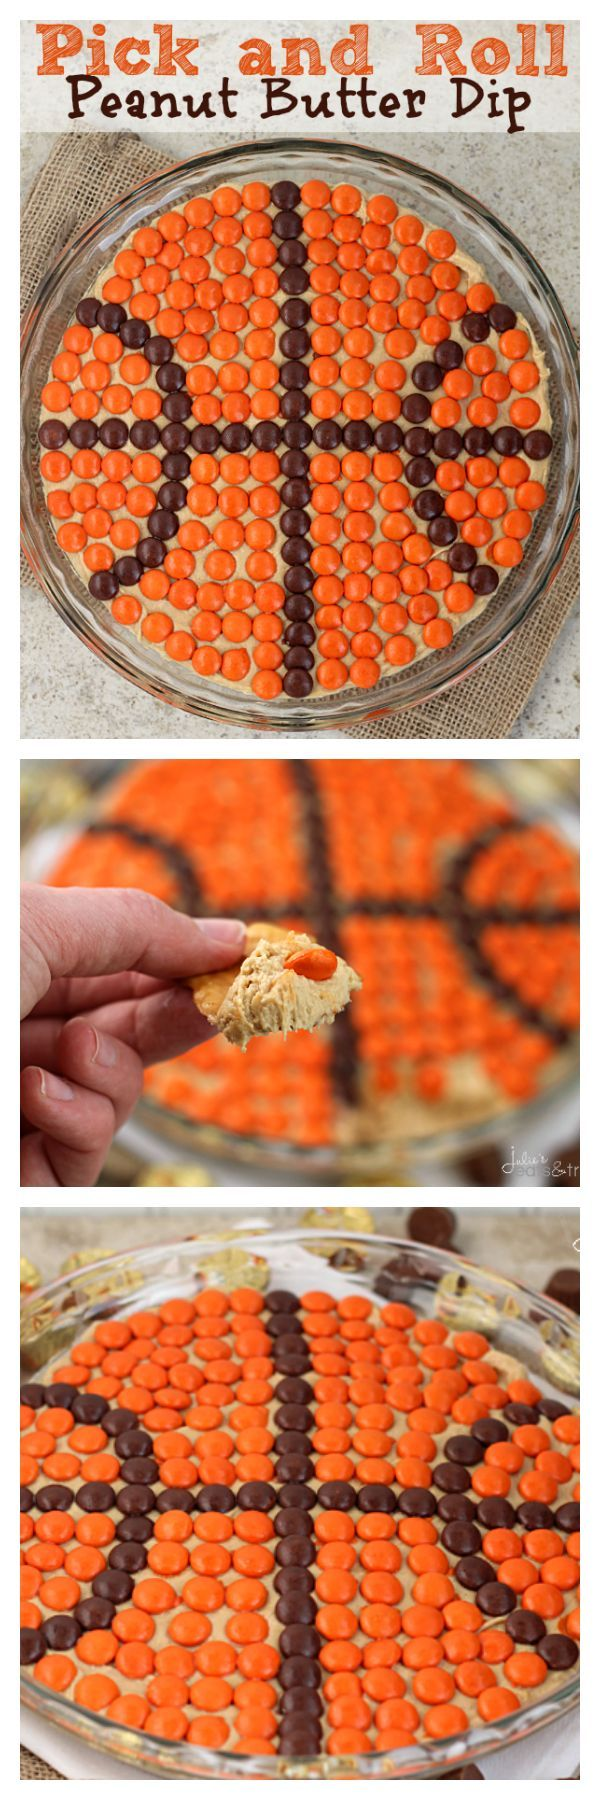 Pick and Roll Peanut Butter Dip ~ Delicious, Creamy Peanut Butter Dip topped with Reese's Pieces! Perfect for March Madness